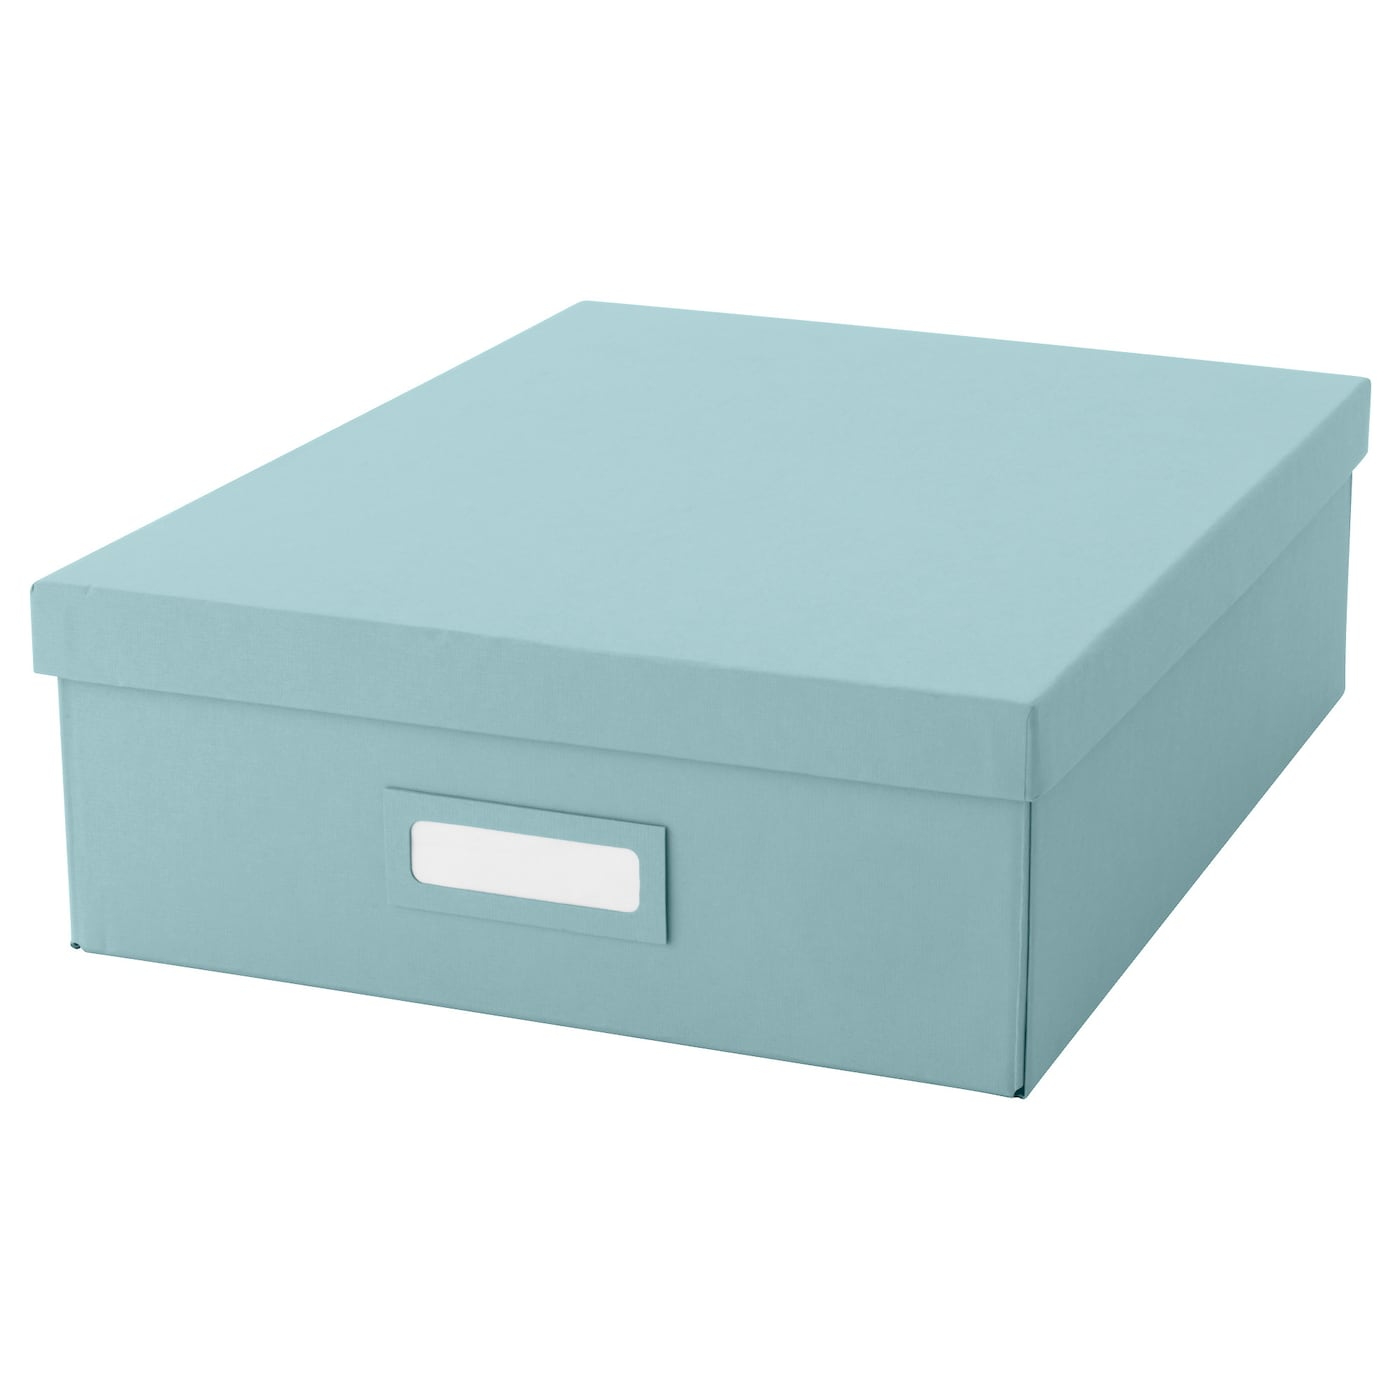 IKEA TJENA box with compartments